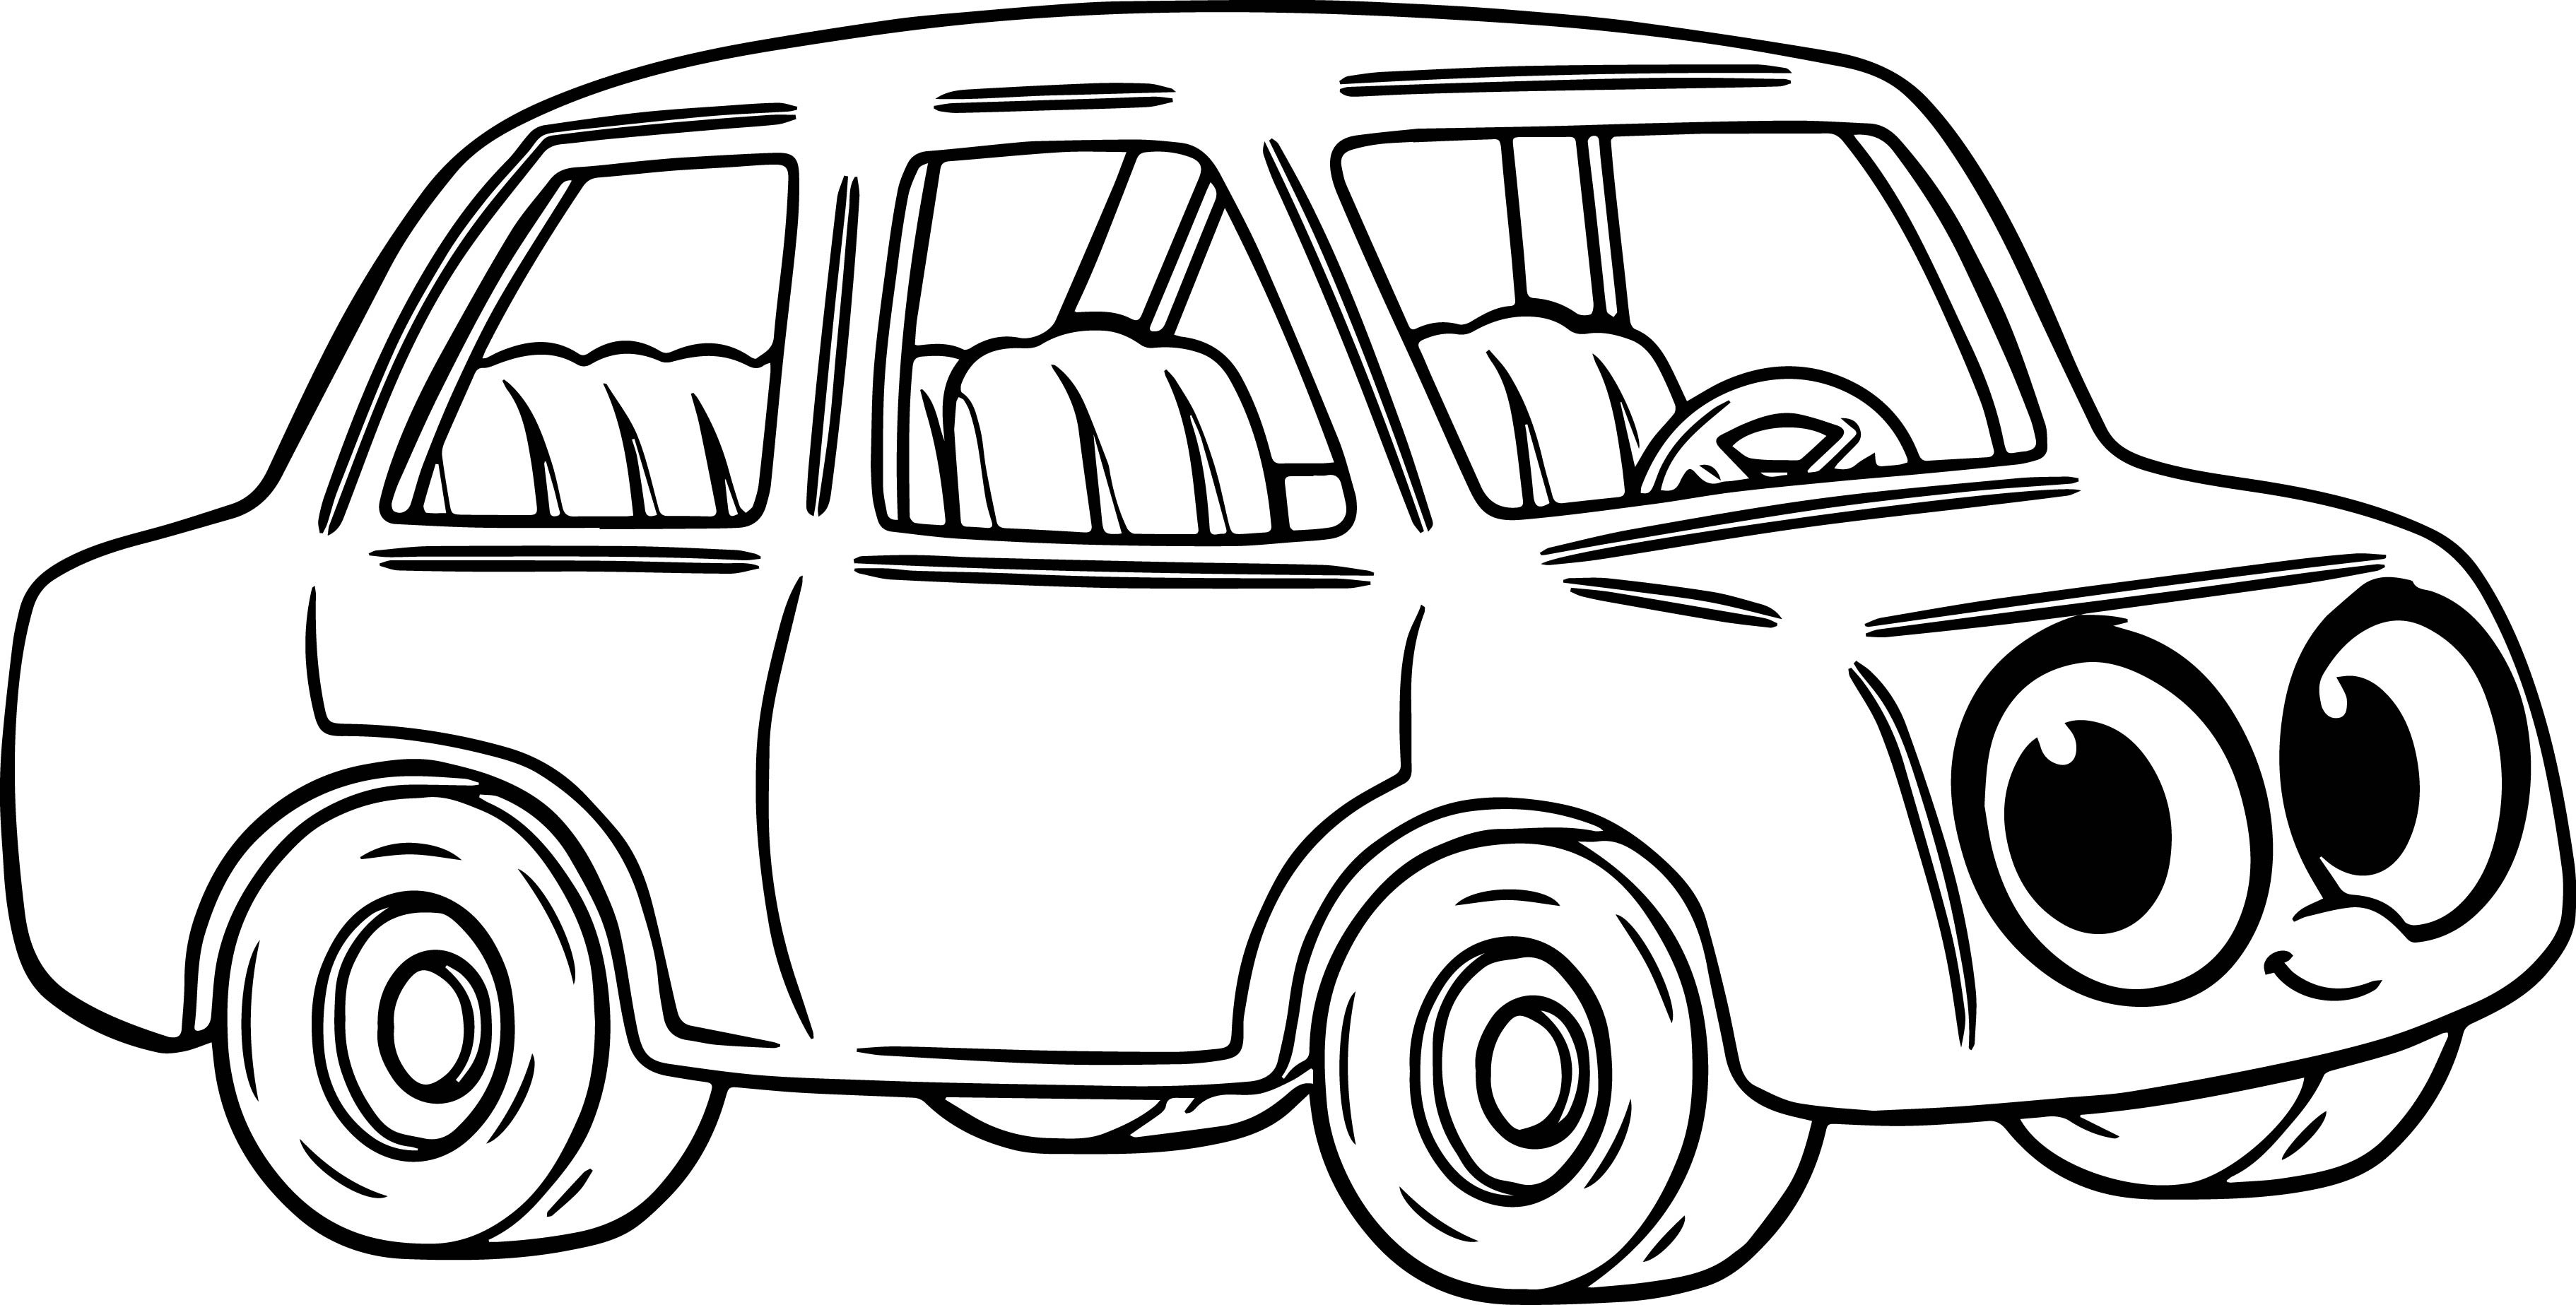 3645x1847 Cars Cartoon Coloring Pages Free Draw To Color